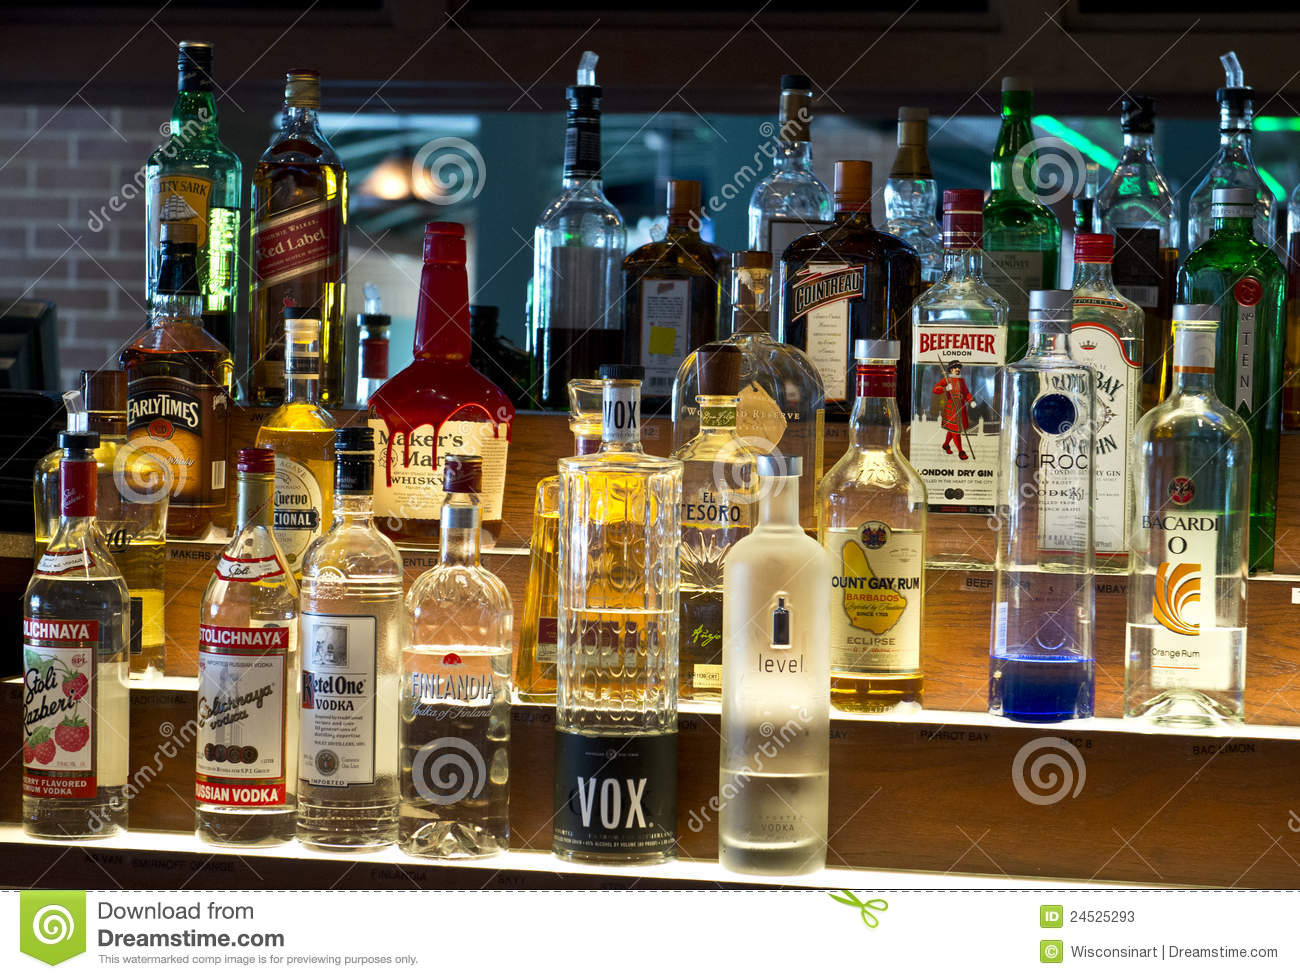 Bottles Of Booze, Liquor, Alcohol In A Bar, Tavern